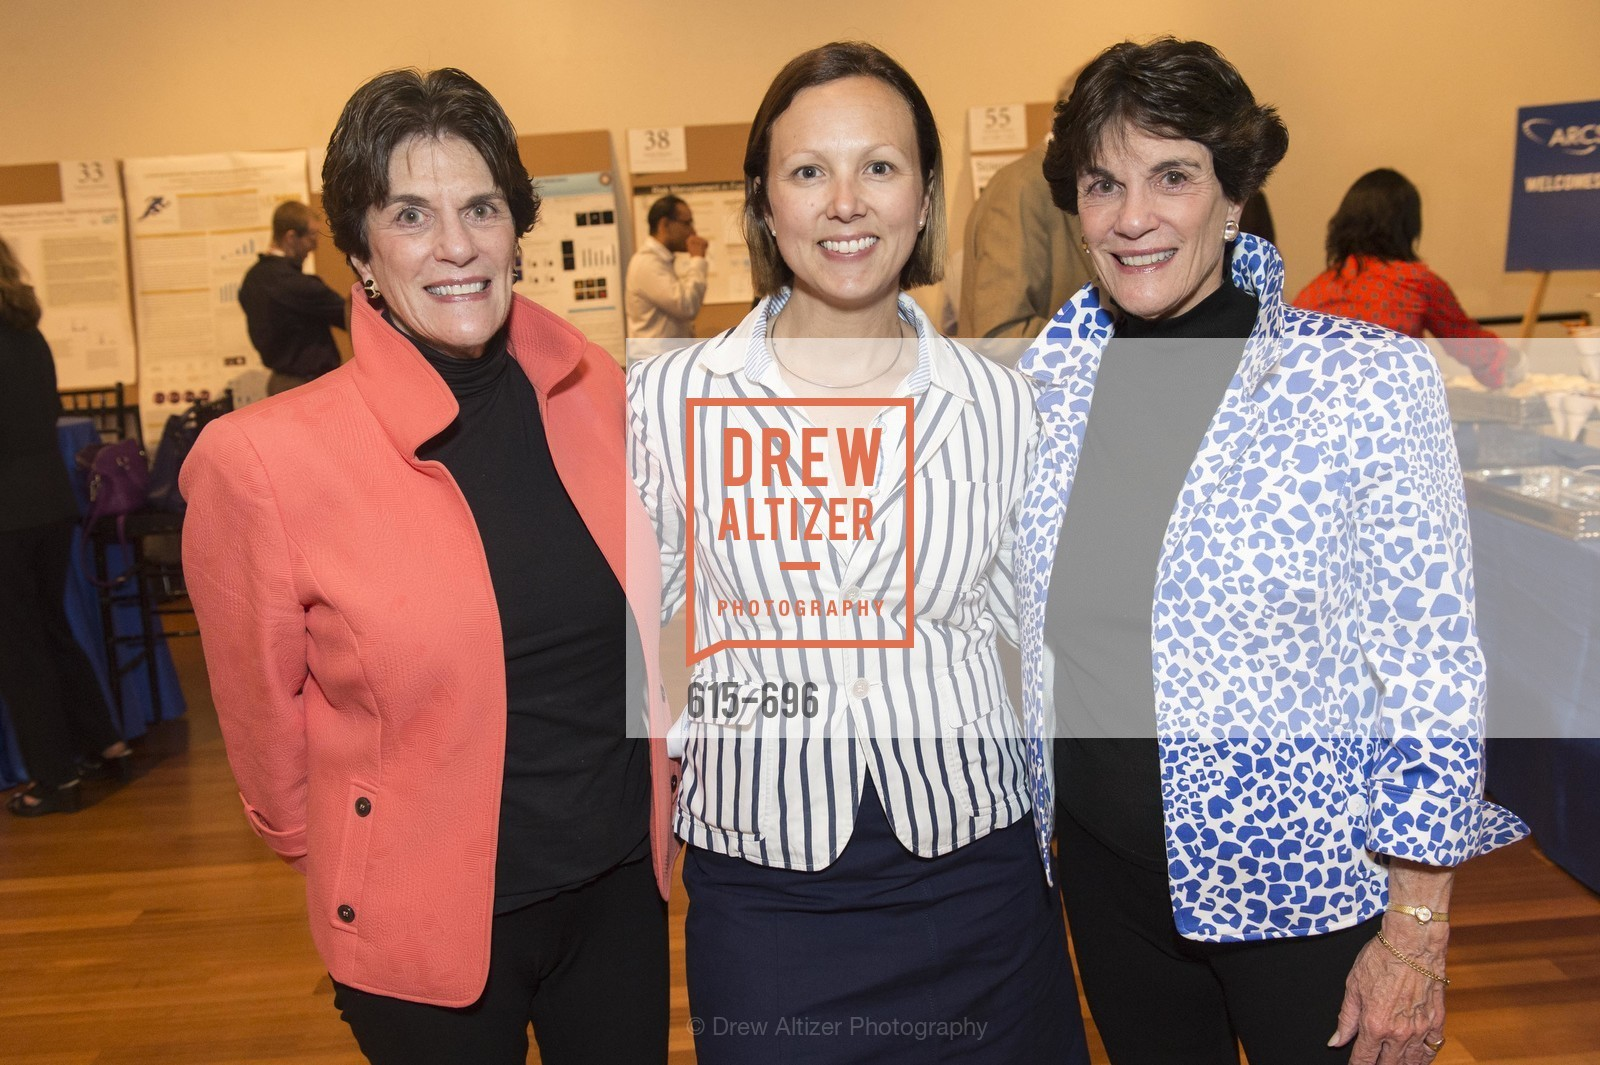 Francie Osthimer, Lisa Duffell, Glennie Eisele, ARCS FOUNDATION Scholar Symposium, US, May 5th, 2015,Drew Altizer, Drew Altizer Photography, full-service agency, private events, San Francisco photographer, photographer california